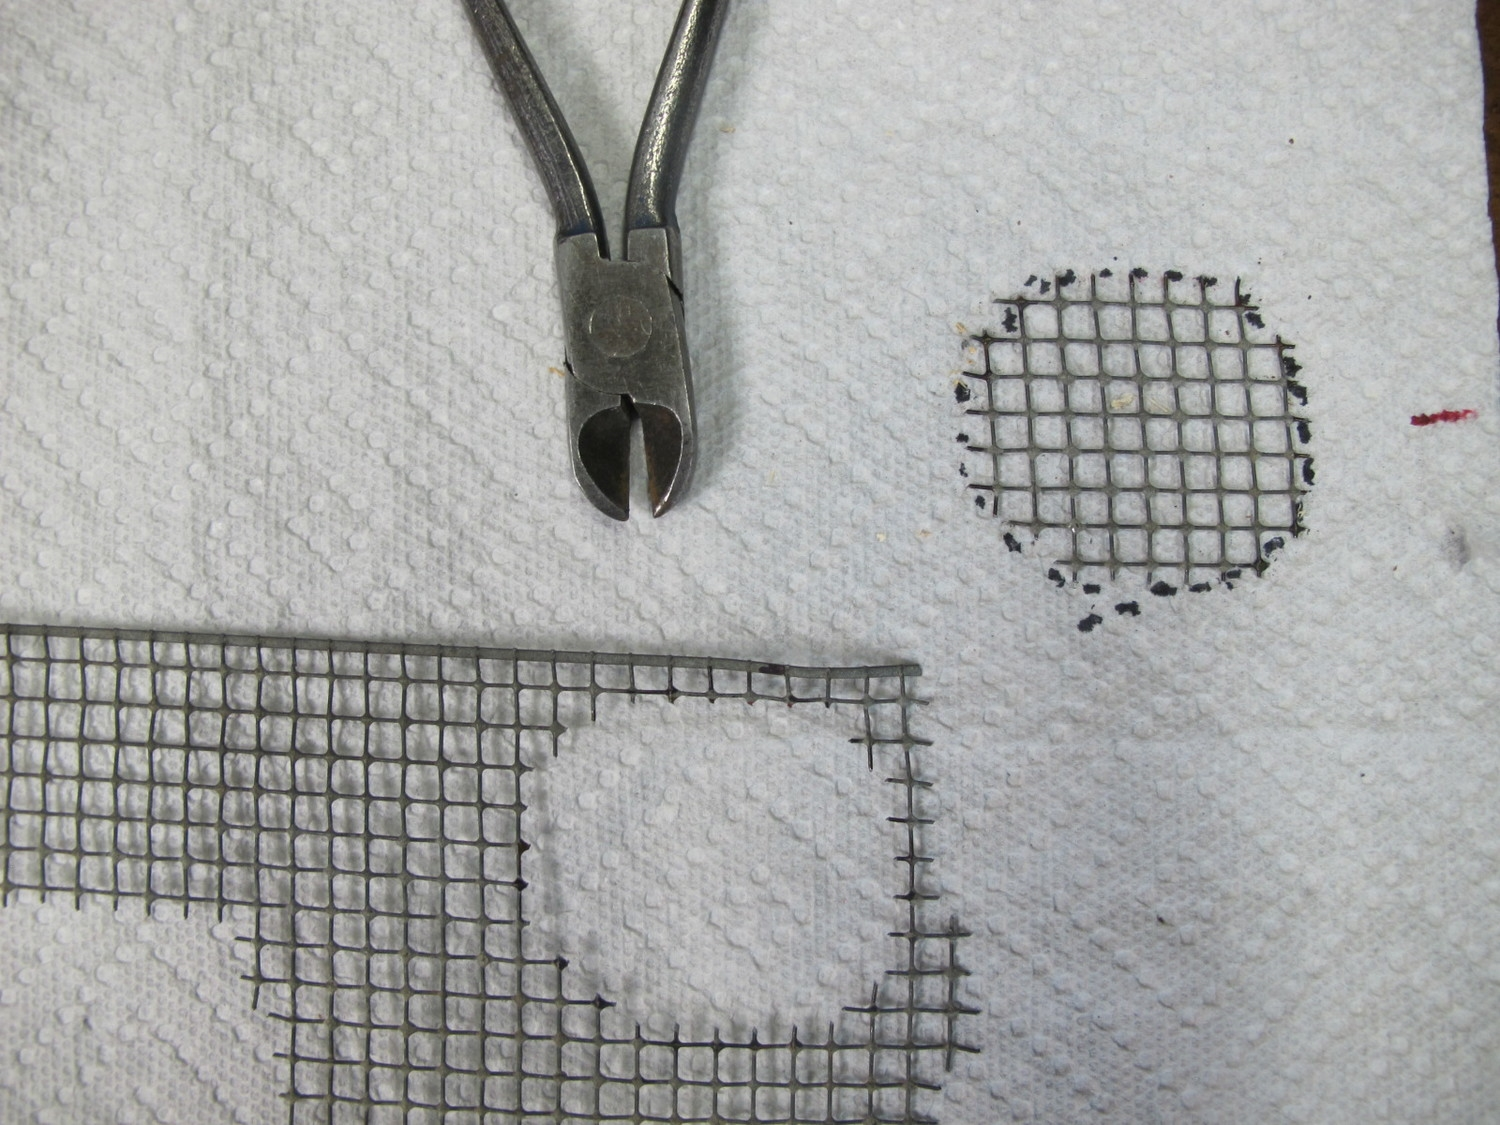 Wire mesh circular bottom cut out of wire mesh stock.